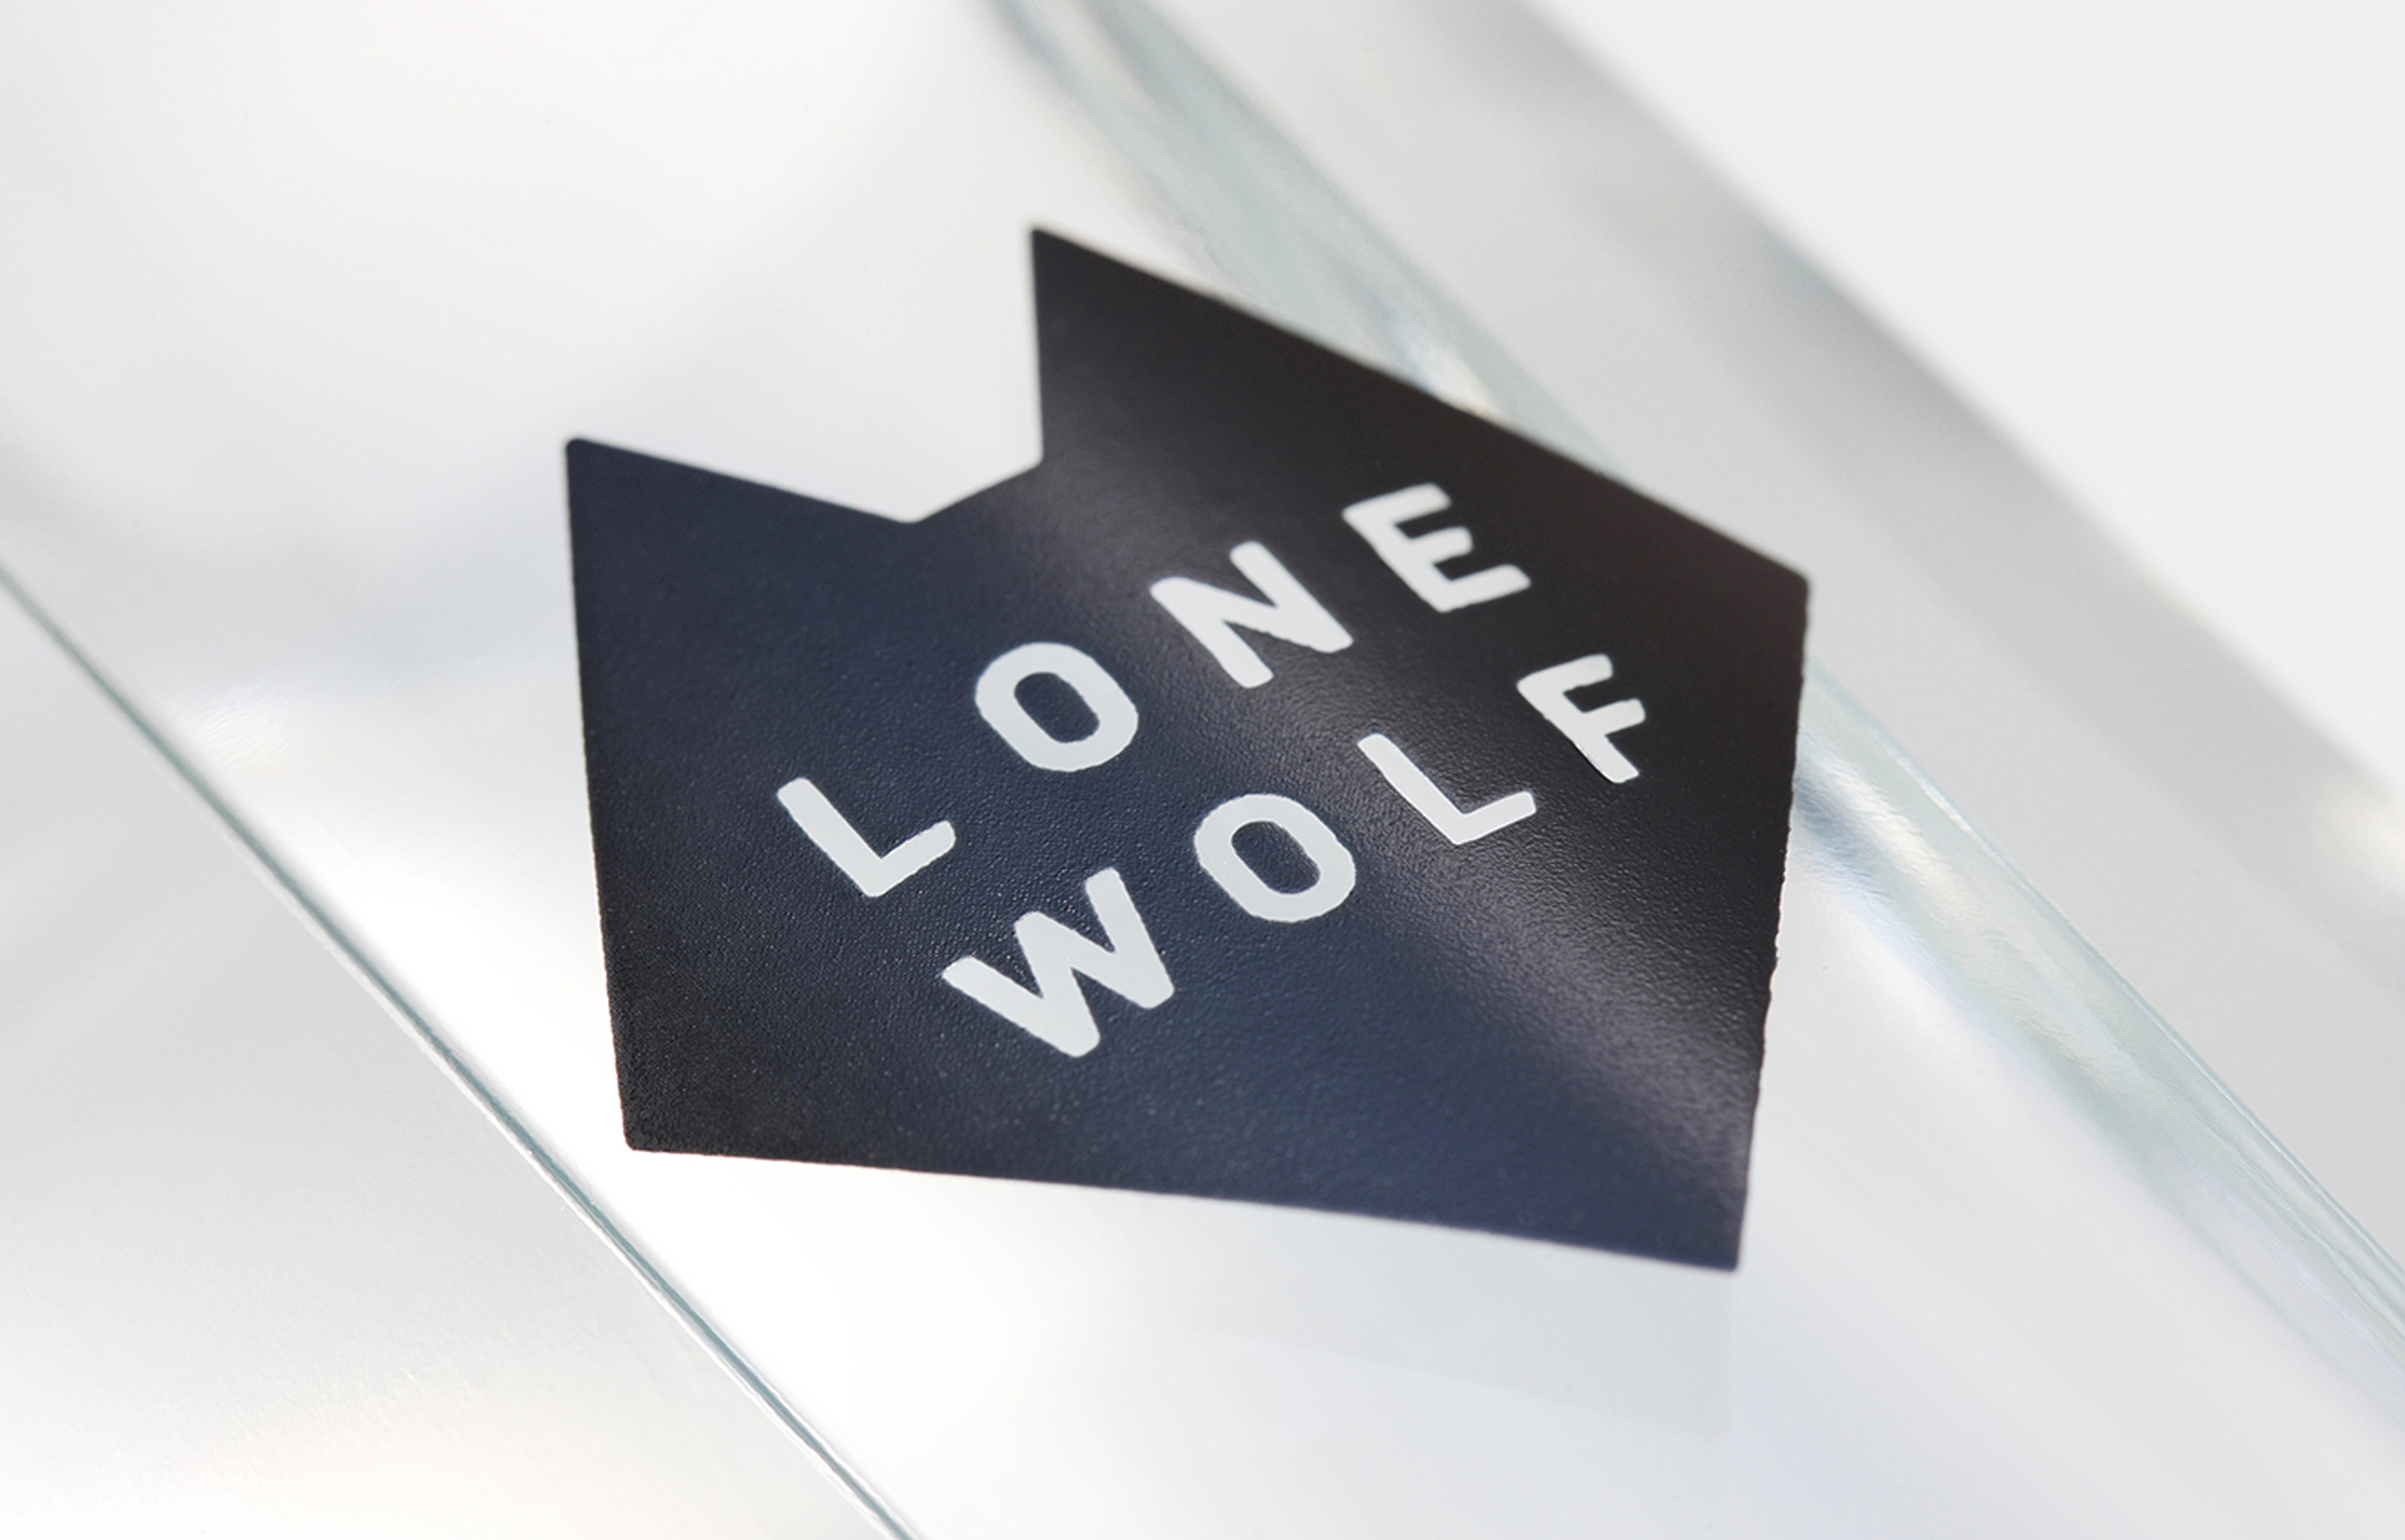 LONEWOLF_logo_on_bottle